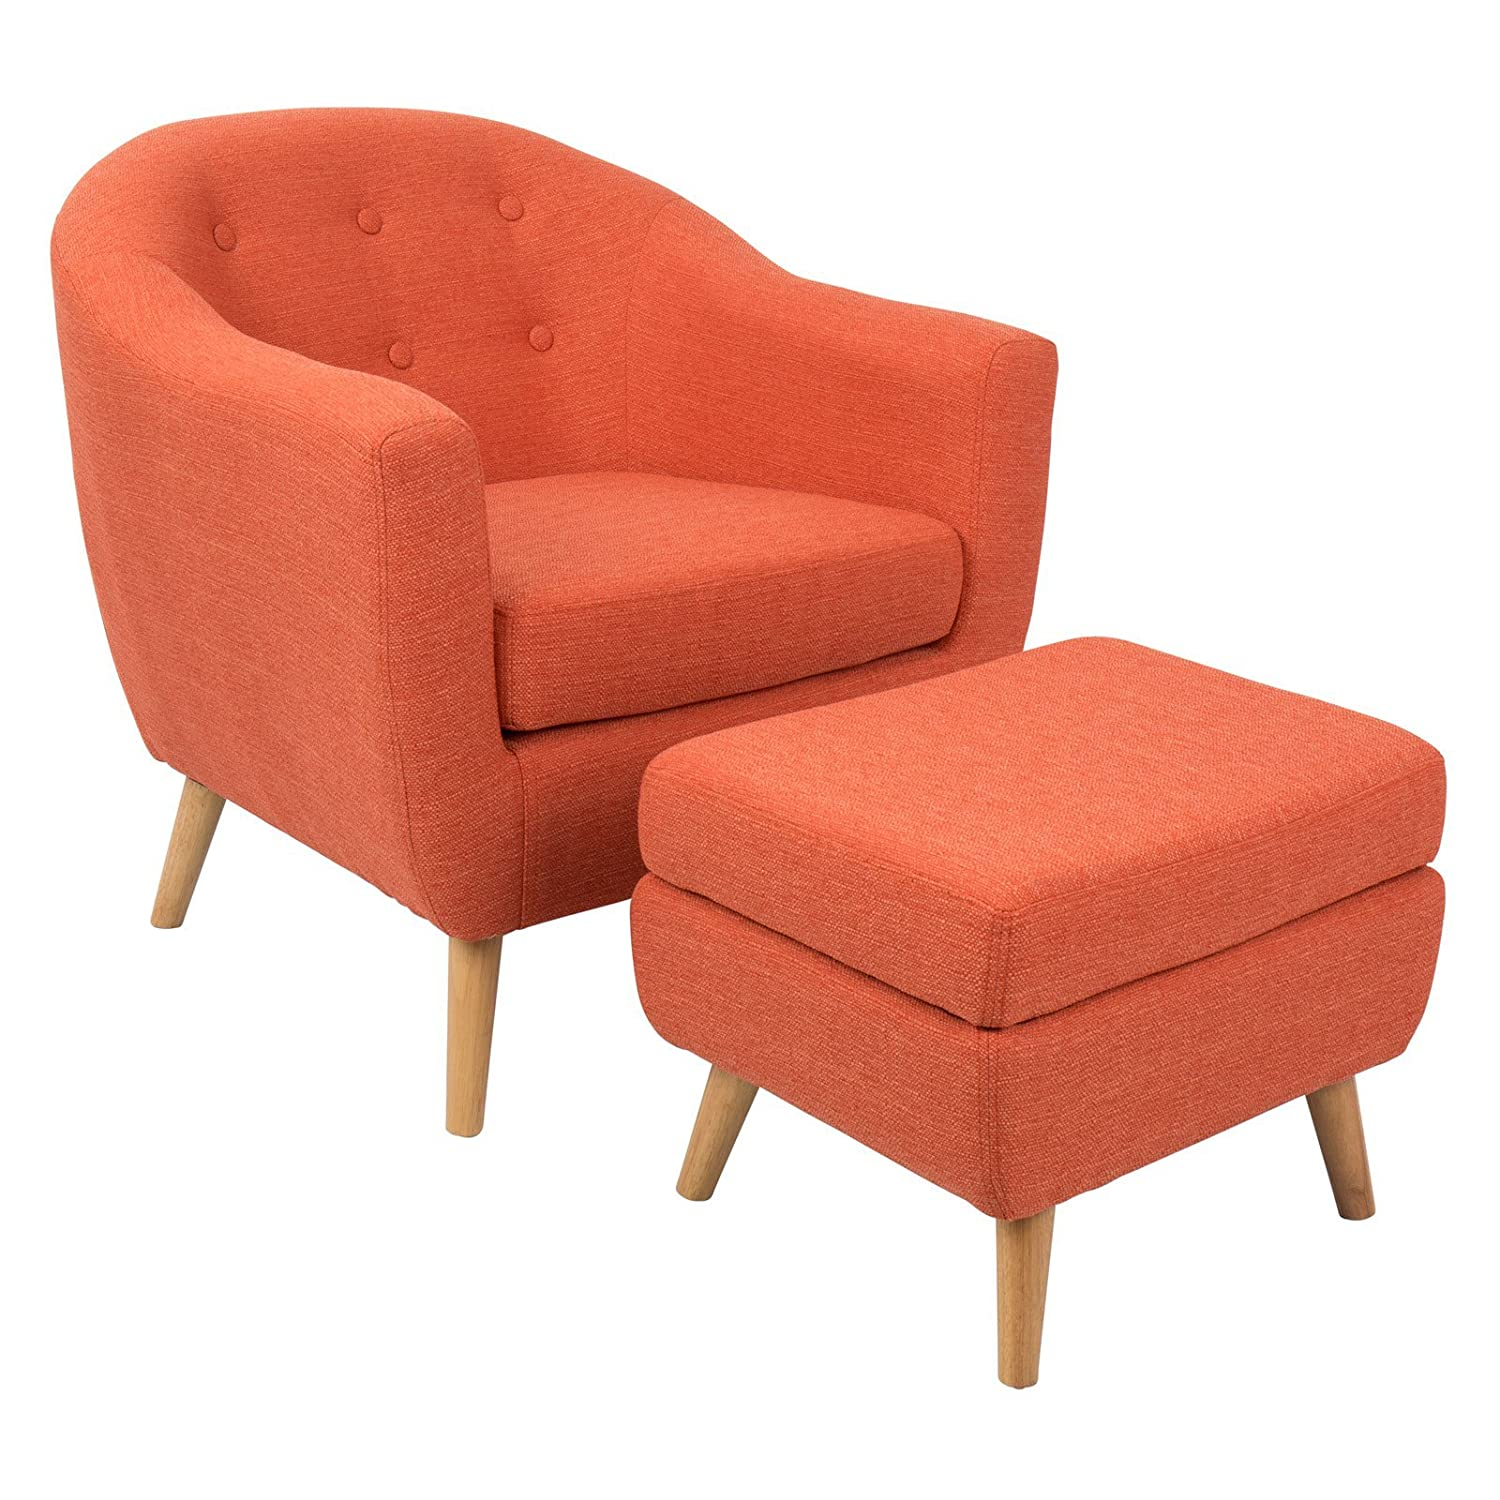 amazoncom lumisource rockwell chair with ottoman orange kitchen  dining. amazoncom lumisource rockwell chair with ottoman orange